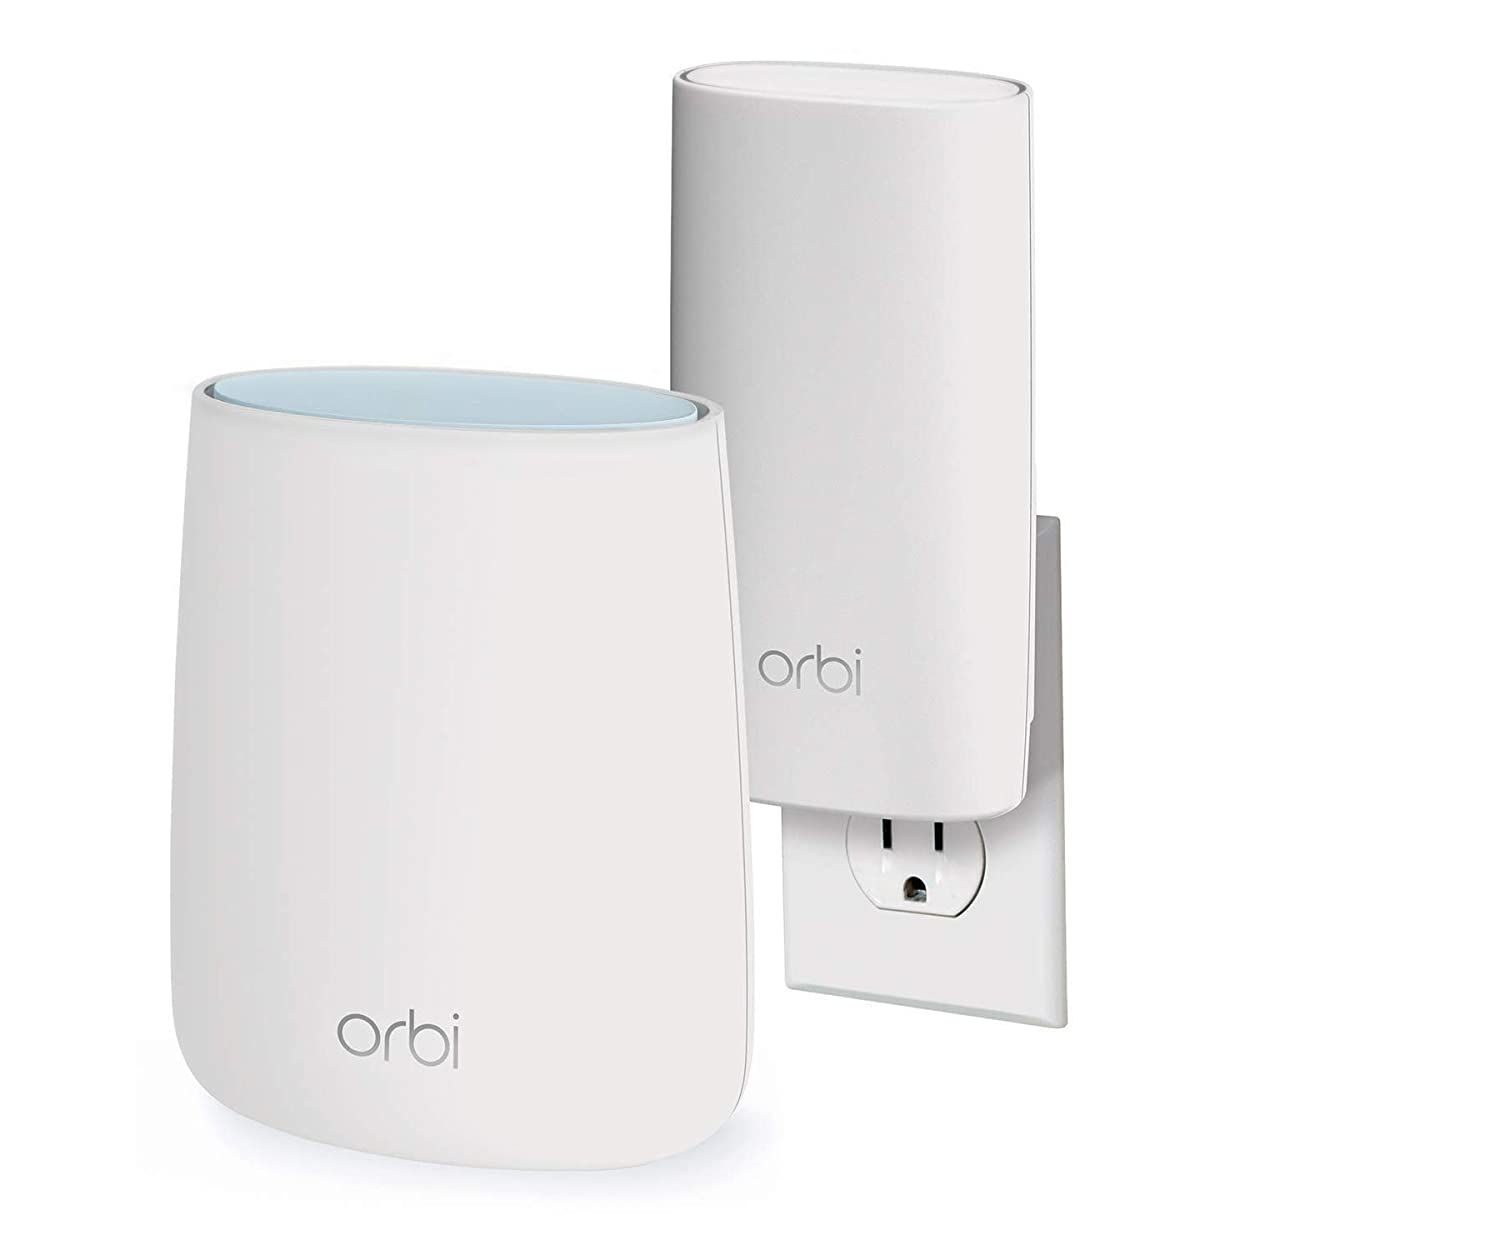 NETGEAR Orbi Compact Wall-Plug Whole Home Mesh WiFi System - WiFi Router  and Wall-Plug Satellite Extender with speeds up to 2 2 Gbps Over 3,500 sq